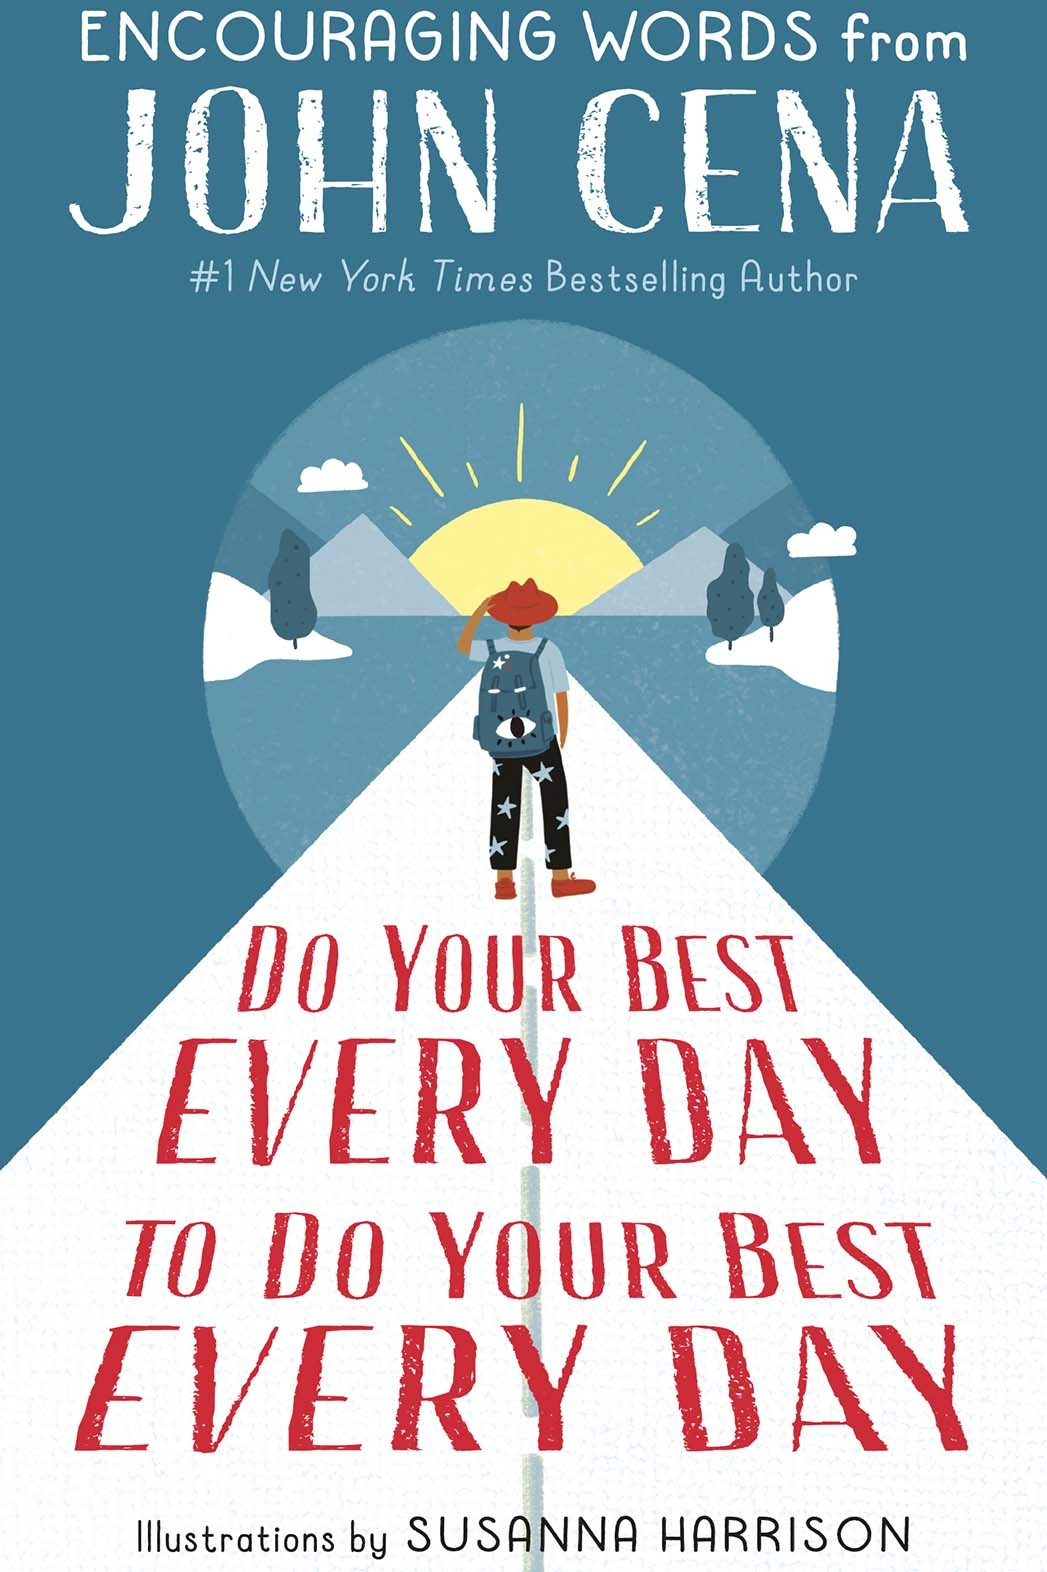 Cover of the book 'Do Your Best Every Day' by John Cena